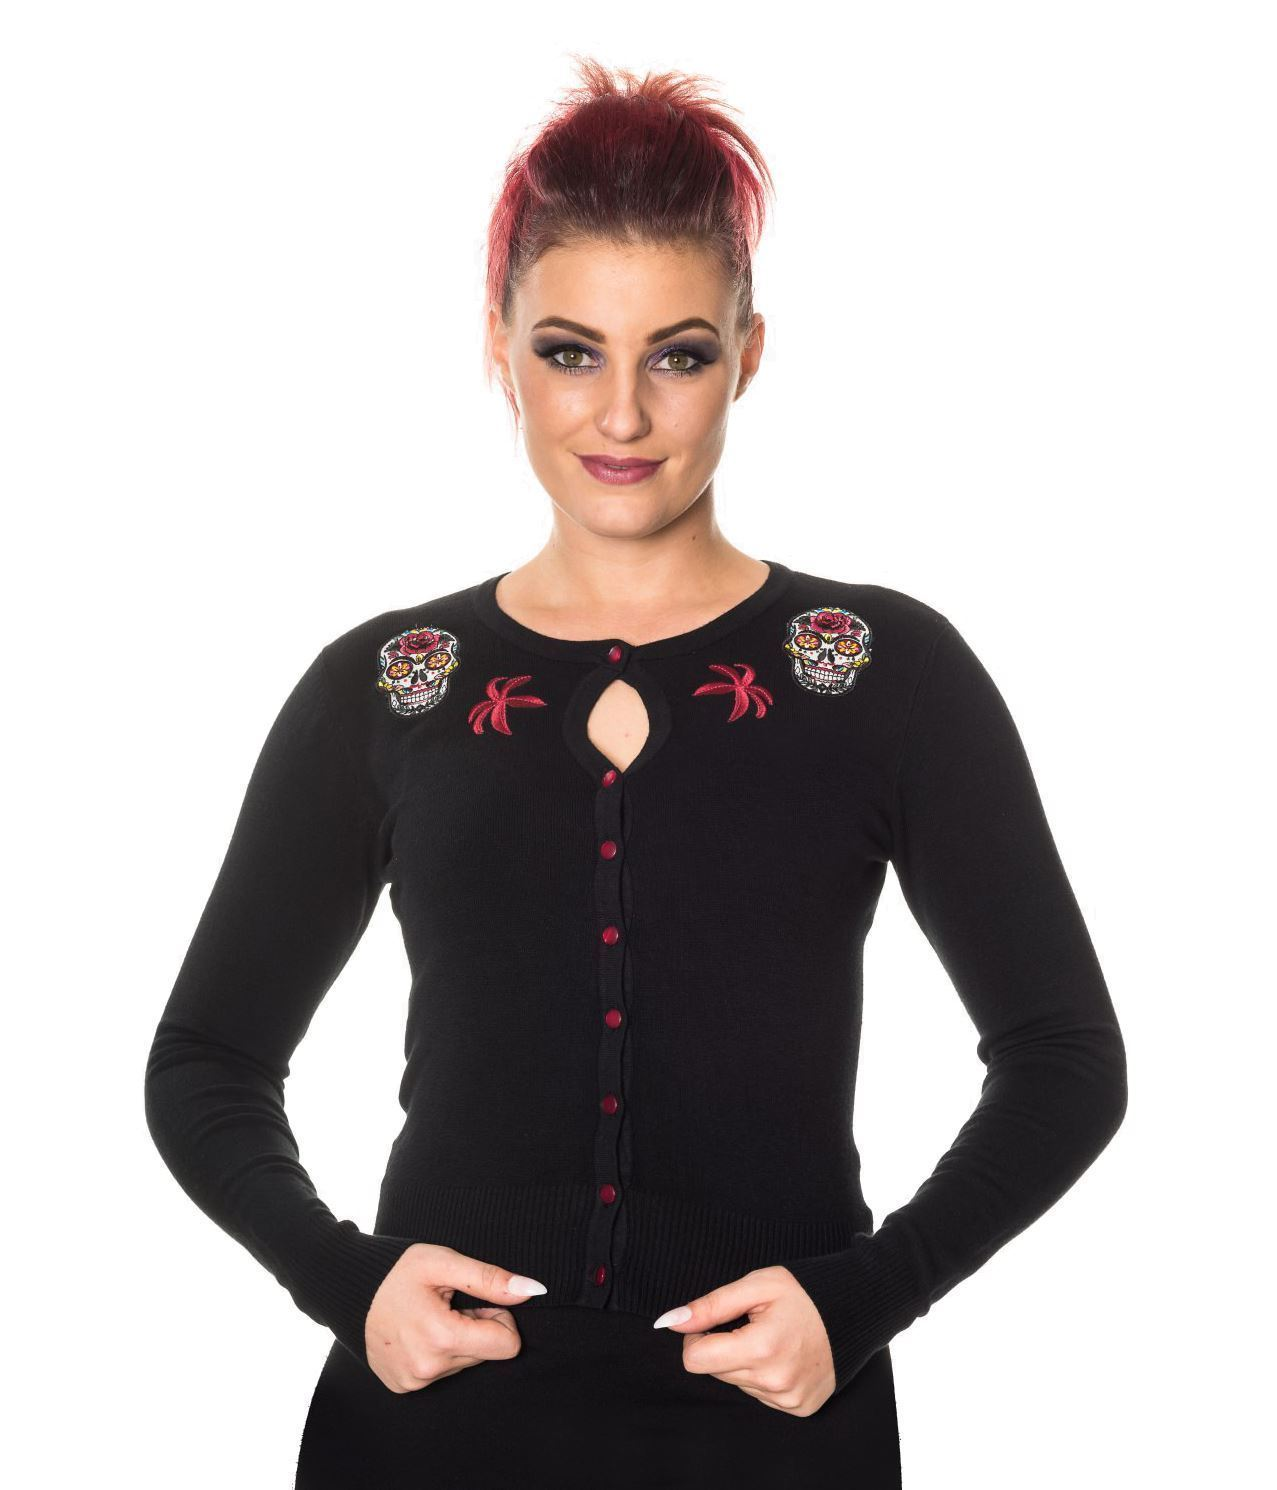 Women/'s Black Gothic Punk Rockabilly Sugar Skull Lace Paloma Top Banned Apparel